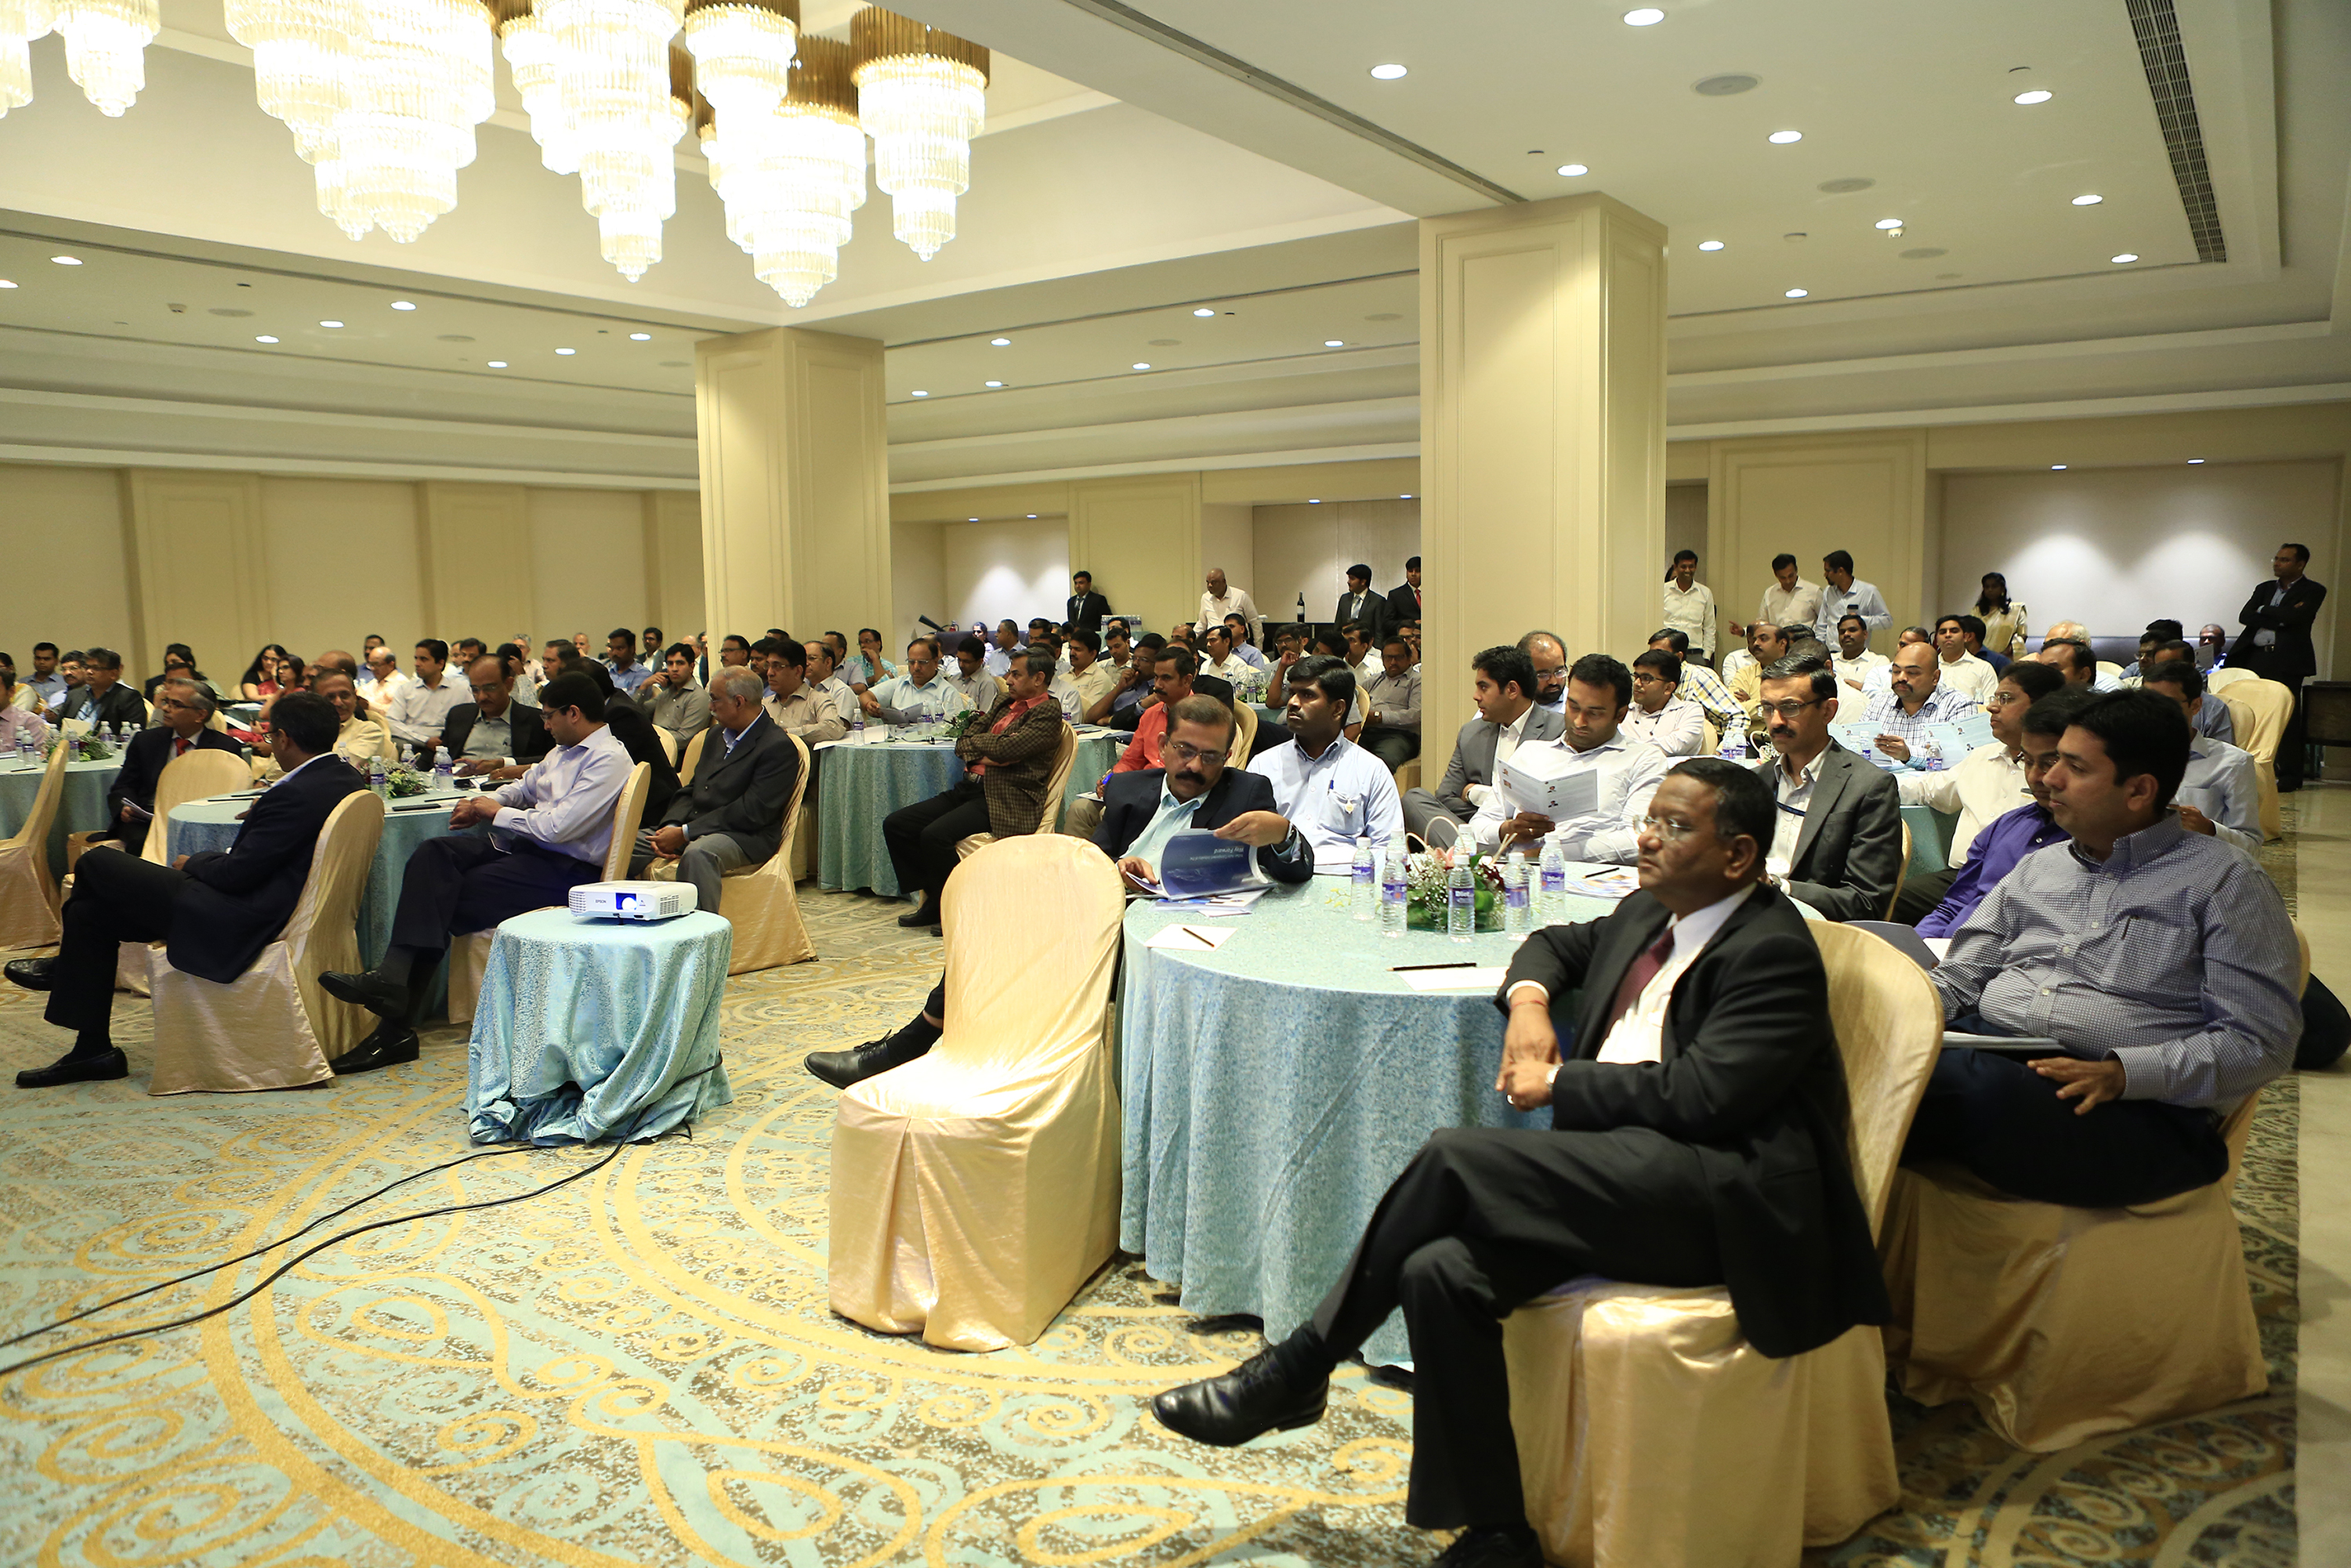 Audience at the conference on Indian Auto Component Industry